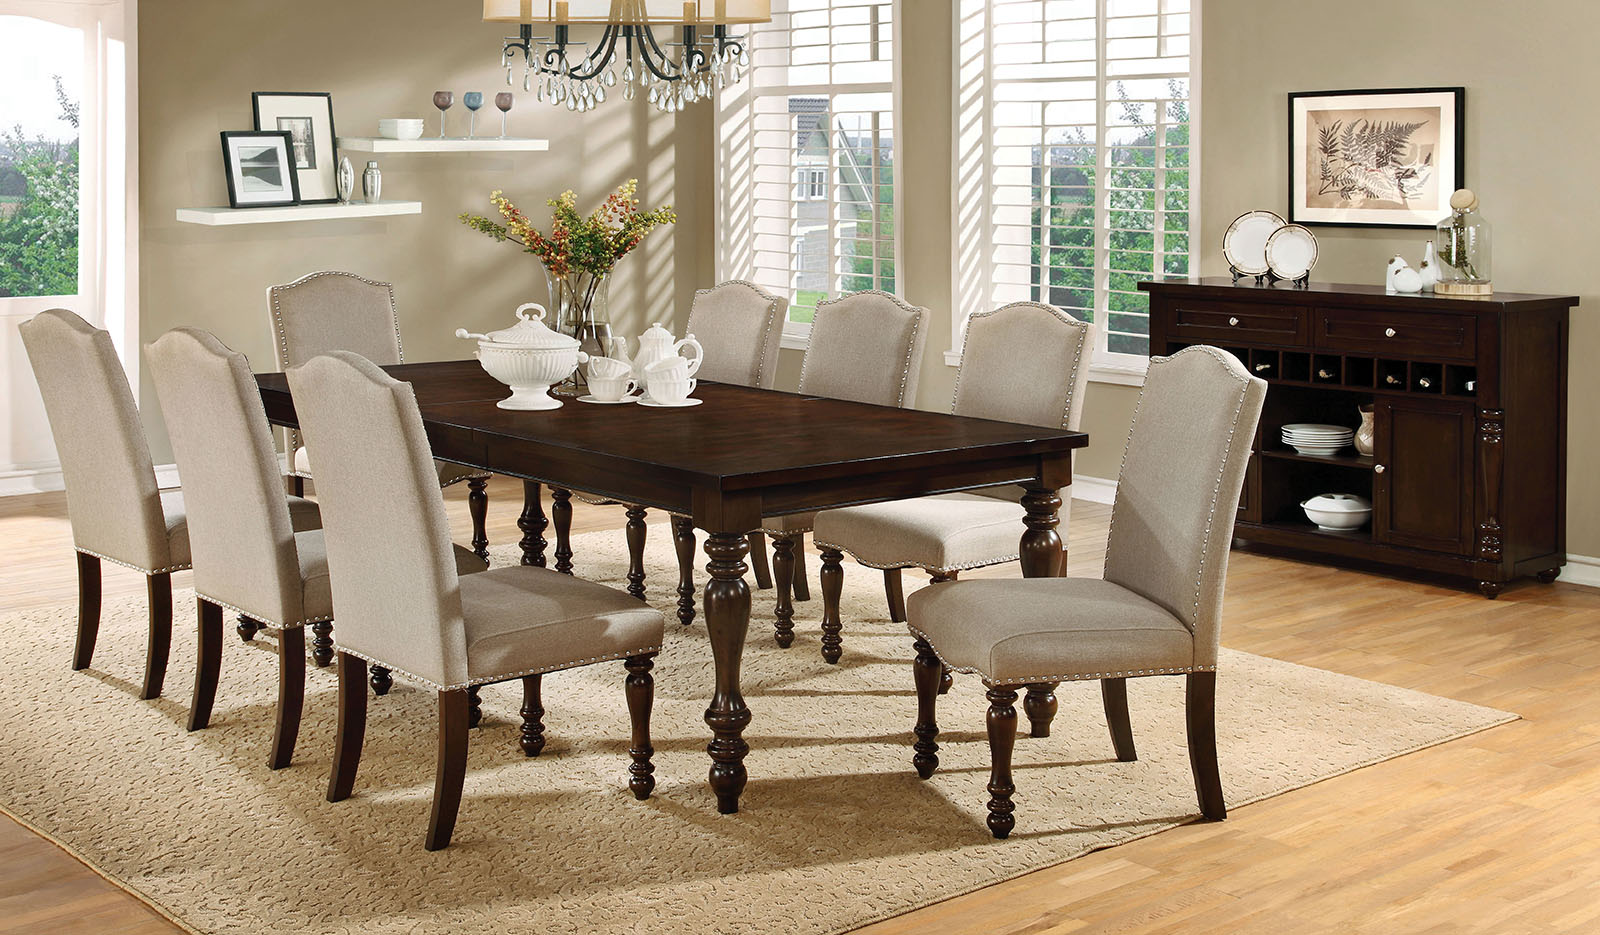 Hurdsfield CMT Pc Dining Set Furniture Mattress Los Angeles - Kitchen table los angeles